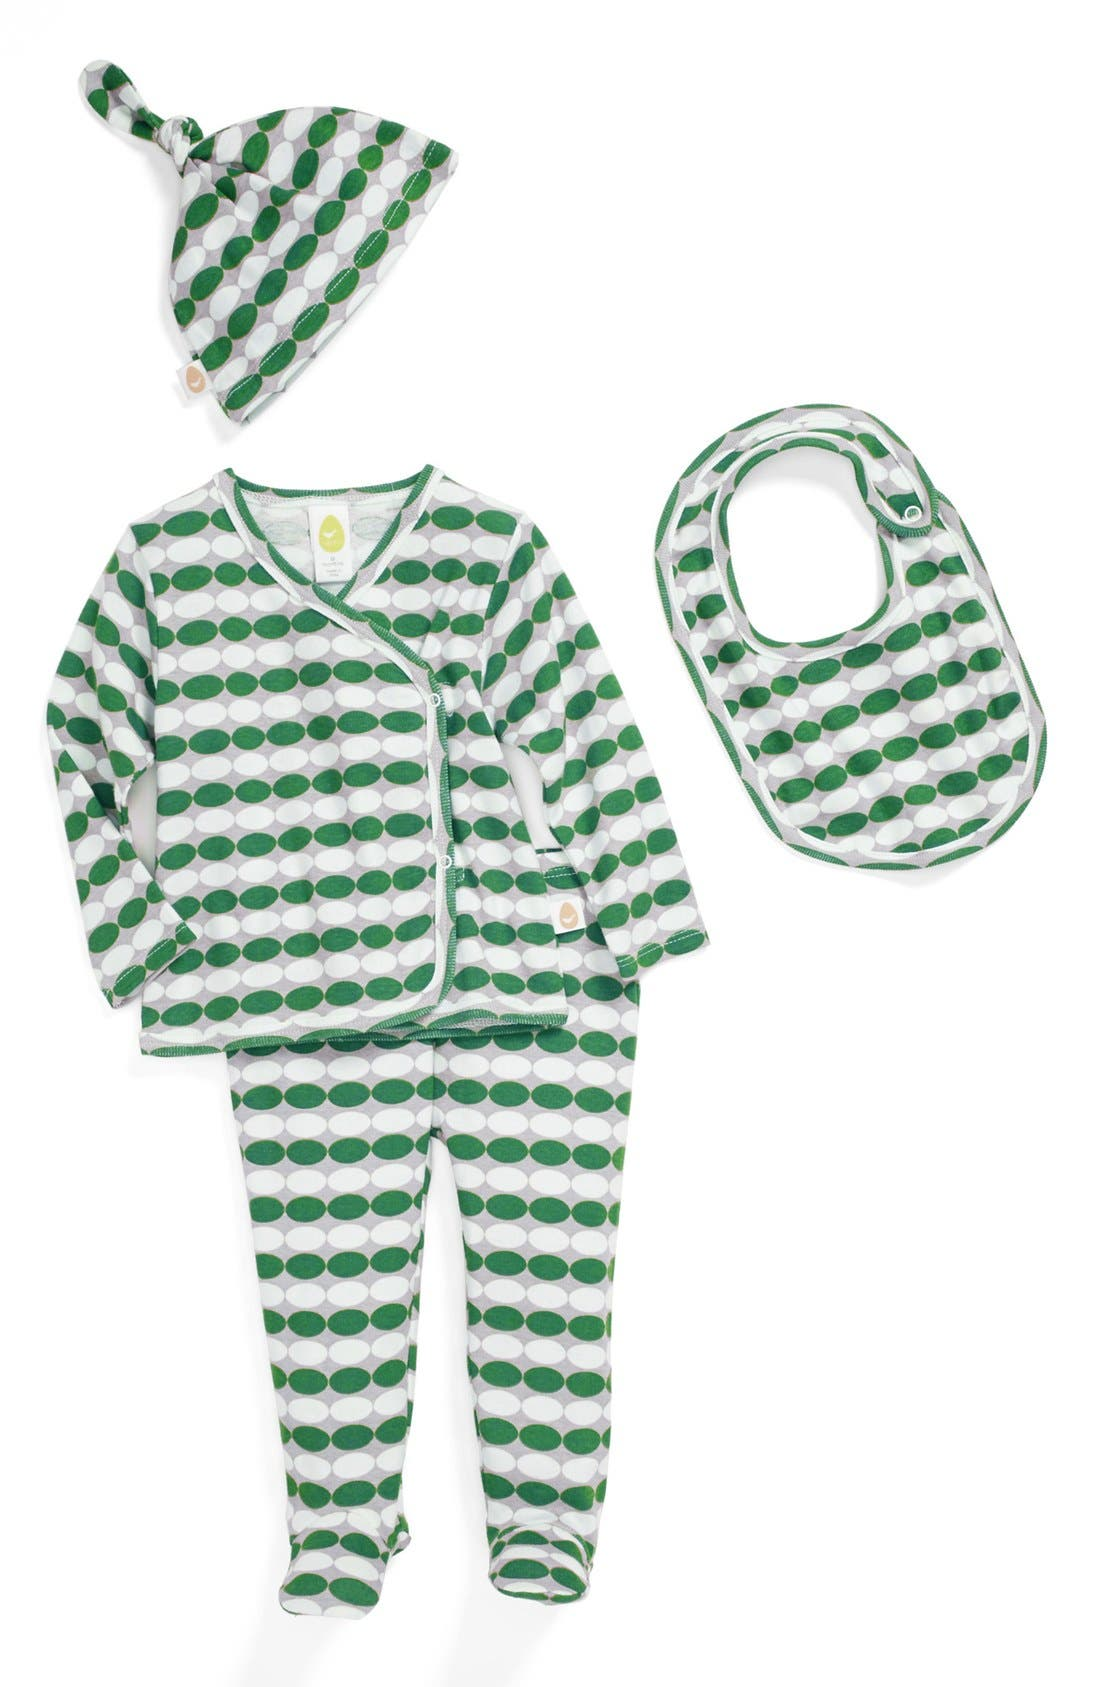 Main Image - Stem Baby Organic Cotton Shirt, Pants, Hat & Bib (Baby Boys)